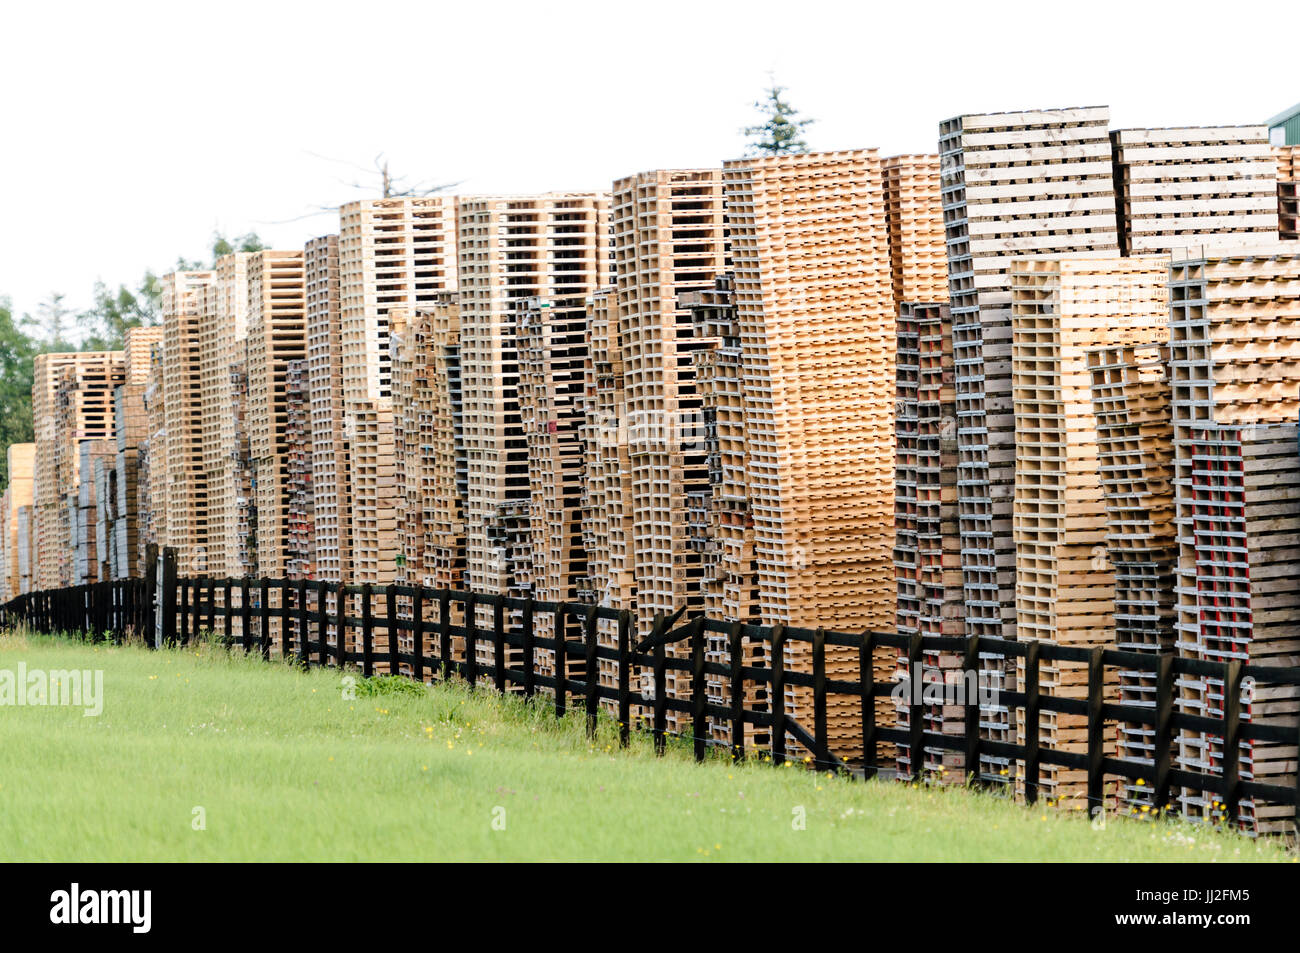 Wooden pallets piled up high at a pallet factory in Ireland. - Stock Image